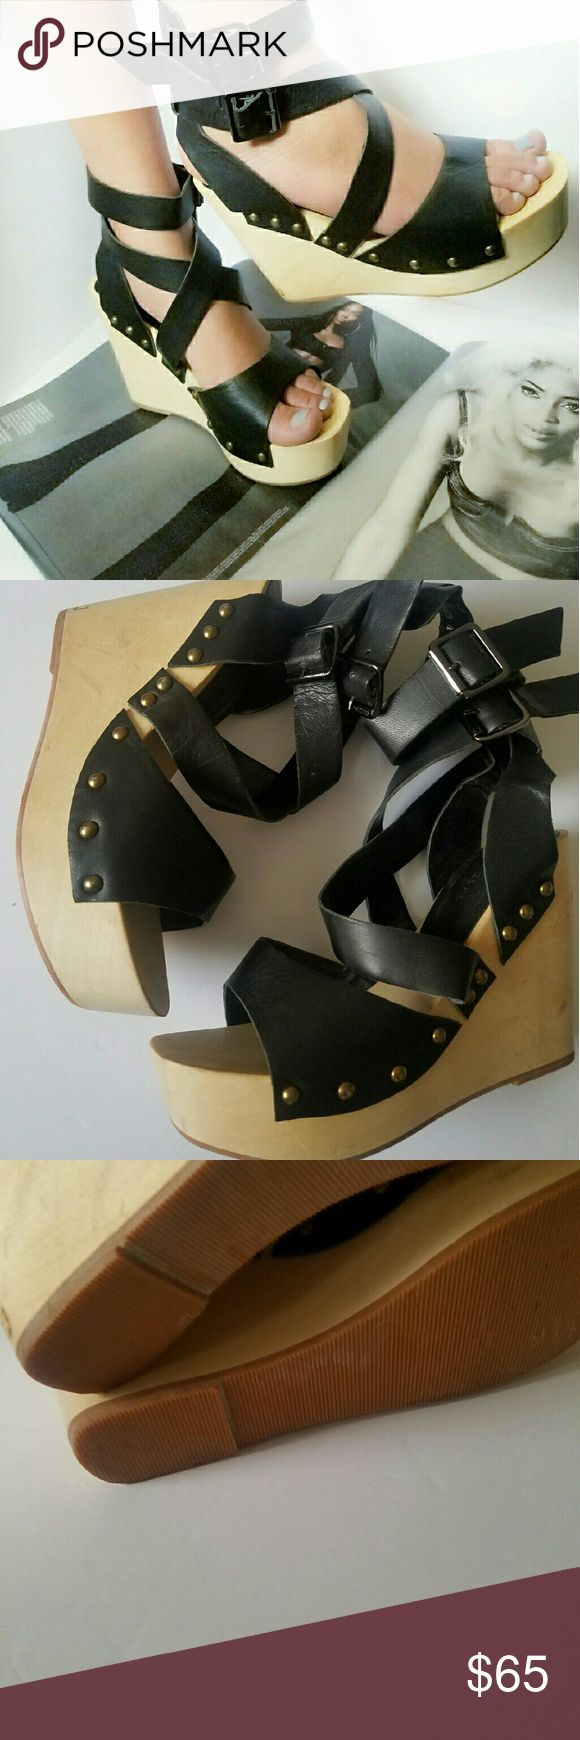 """Chinese laundry wooden wedge platform heel Stand tall with these edgy sandals by Chinese Laundry  Leather upper   Approximately 4 1/4"""" Heel with 1 1/2"""" platform  Like new  *labeled size 8 but fits more like 7- 7 1/2*  Please check out my closet for other fabulous items! Reasonable offers welcome. Chinese Laundry Shoes"""